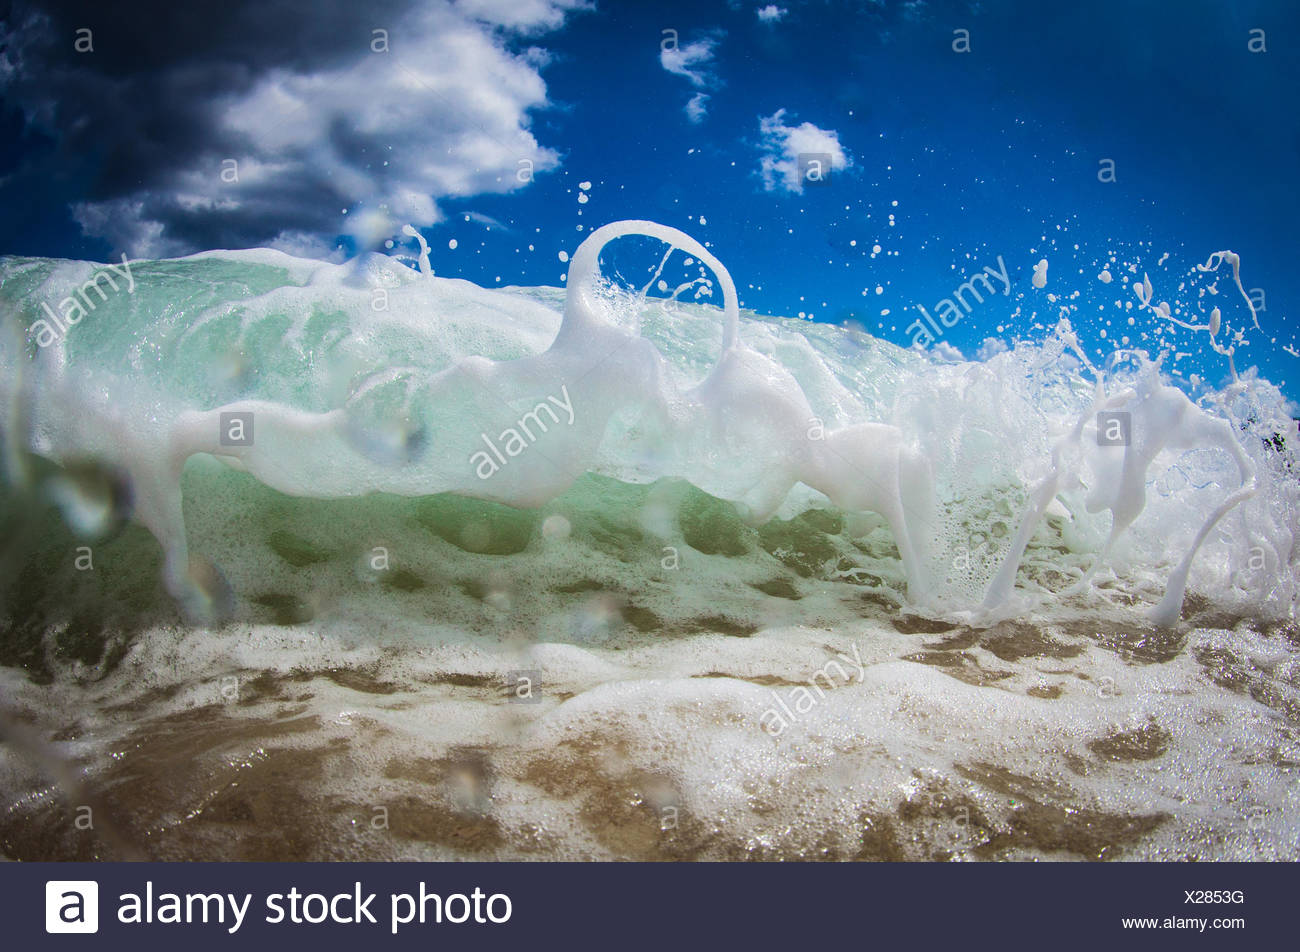 Close-up of foam on top of wave - Stock Image